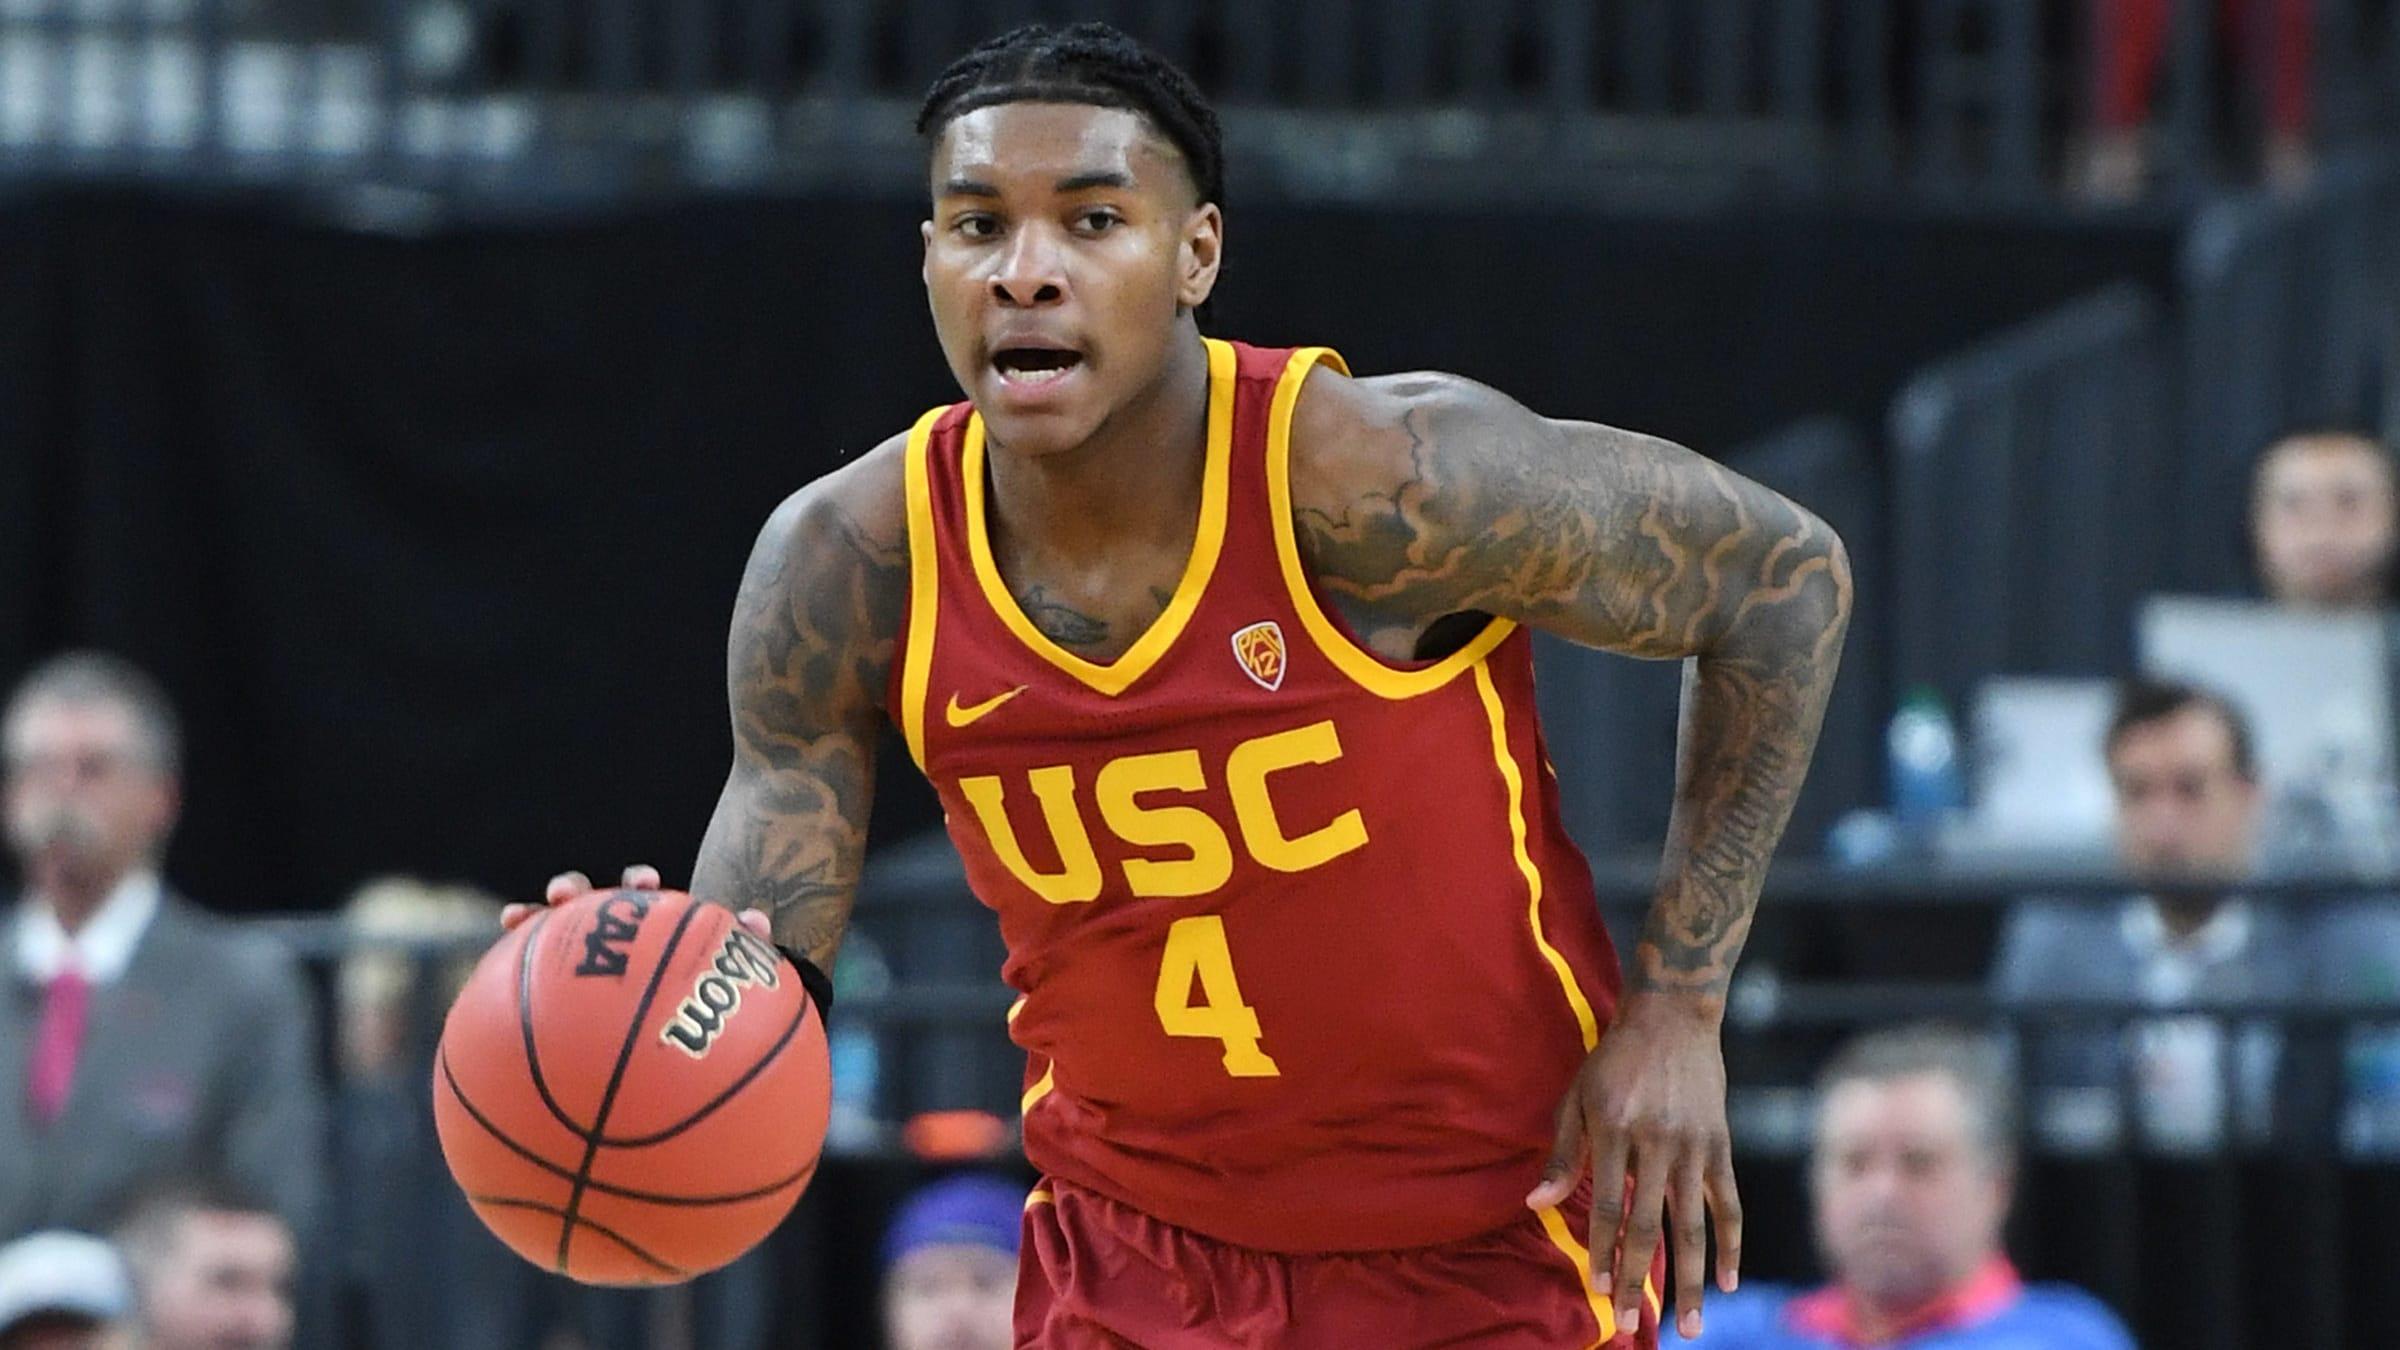 LAS VEGAS, NEVADA - MARCH 14:  Kevin Porter Jr. #4 of the USC Trojans brings the ball up the court against the Washington Huskies during a quarterfinal game of the Pac-12 basketball tournament at T-Mobile Arena on March 14, 2019 in Las Vegas, Nevada. The Huskies defeated the Trojans 78-75.  (Photo by Ethan Miller/Getty Images)